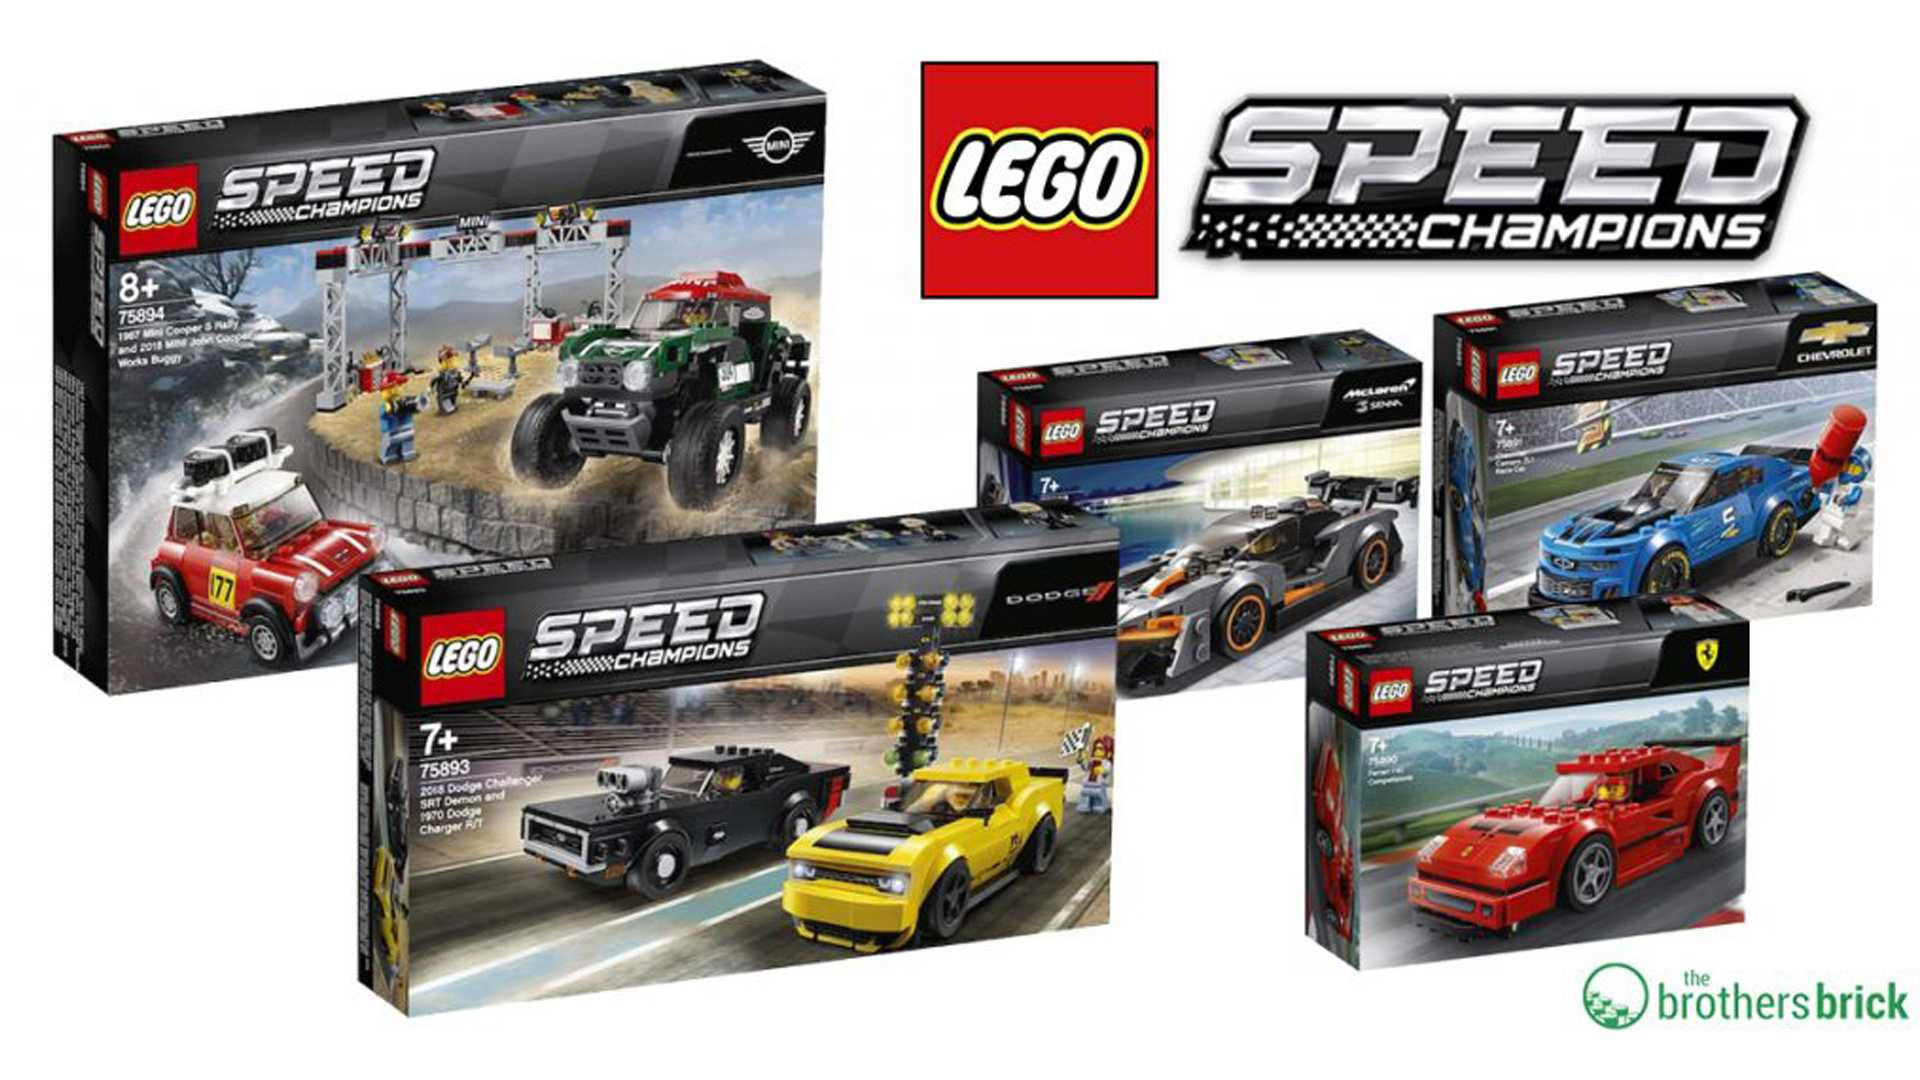 Lego Speed Champions sets 2019 (1)